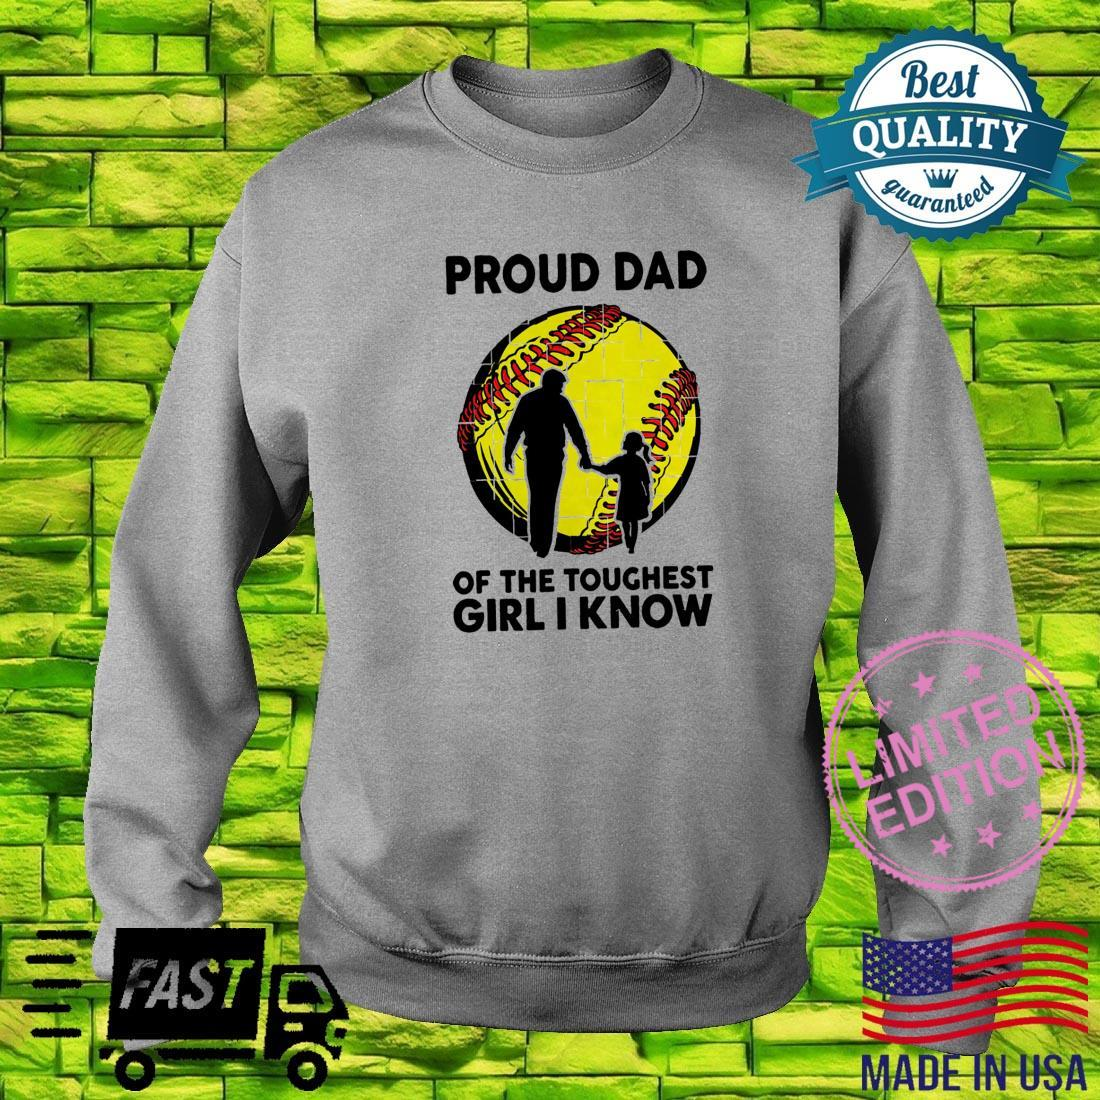 Hard-Nosed and Proud of It shirt